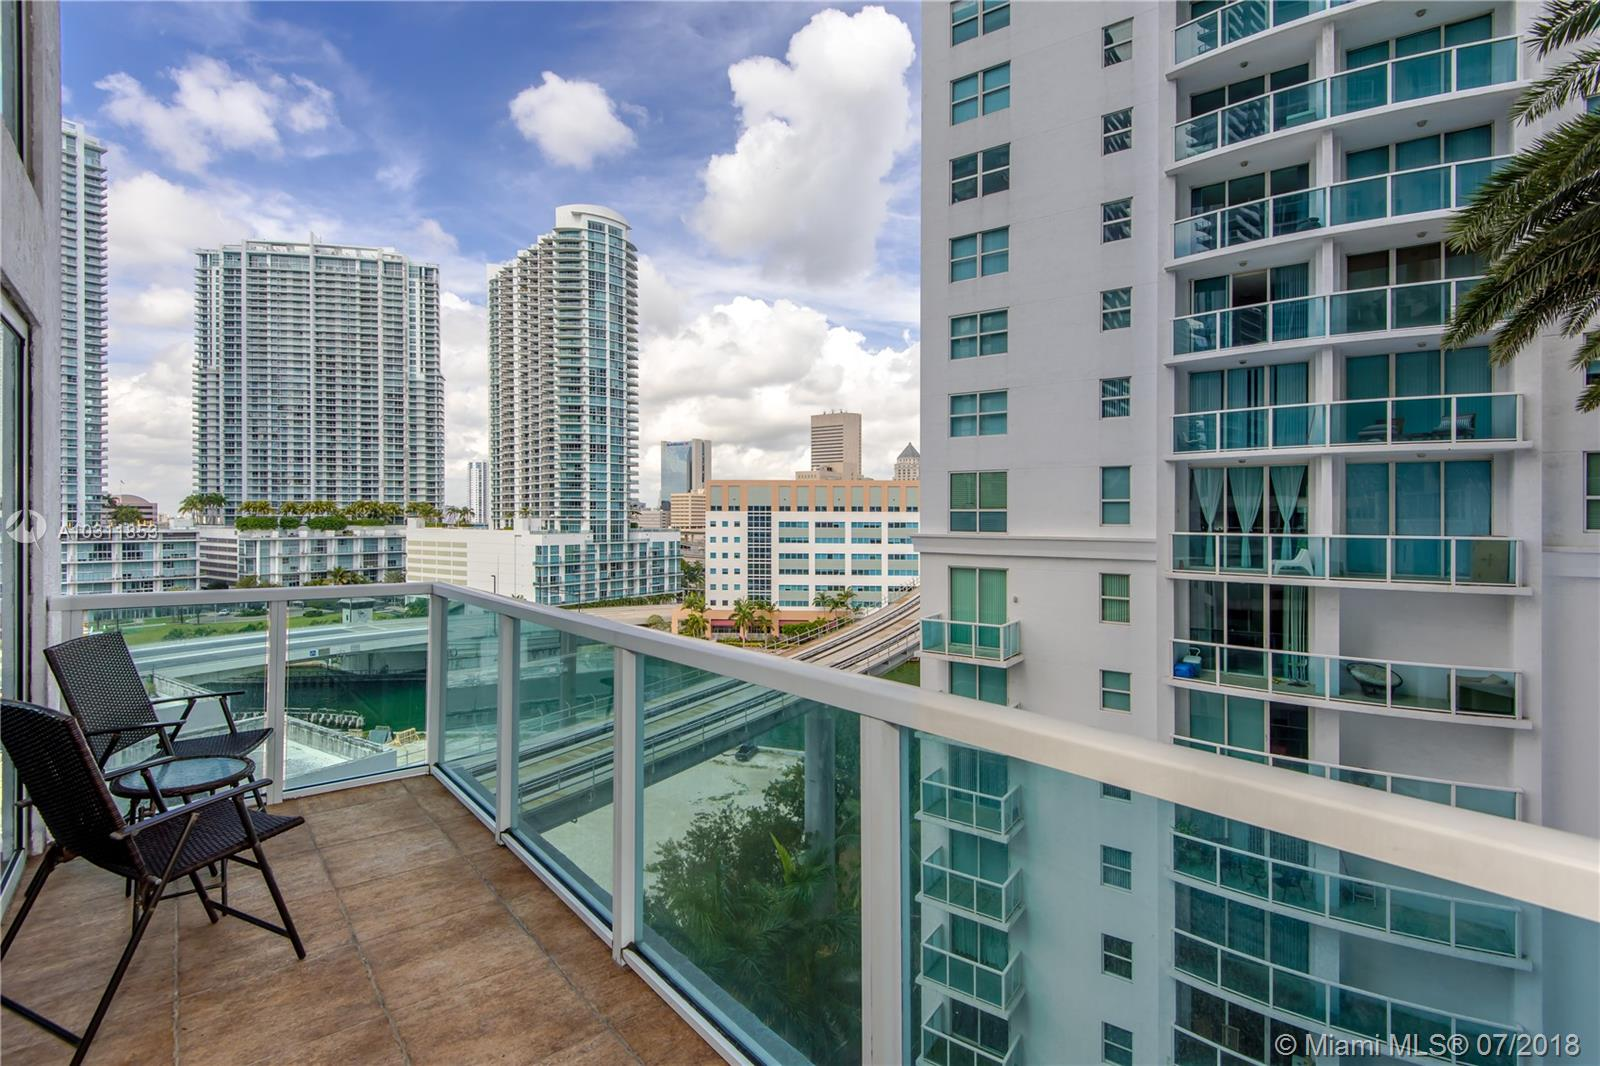 41 SE 5th Street, Miami, FL 33131-2504, Brickell on the River South #717, Brickell, Miami A10311853 image #23